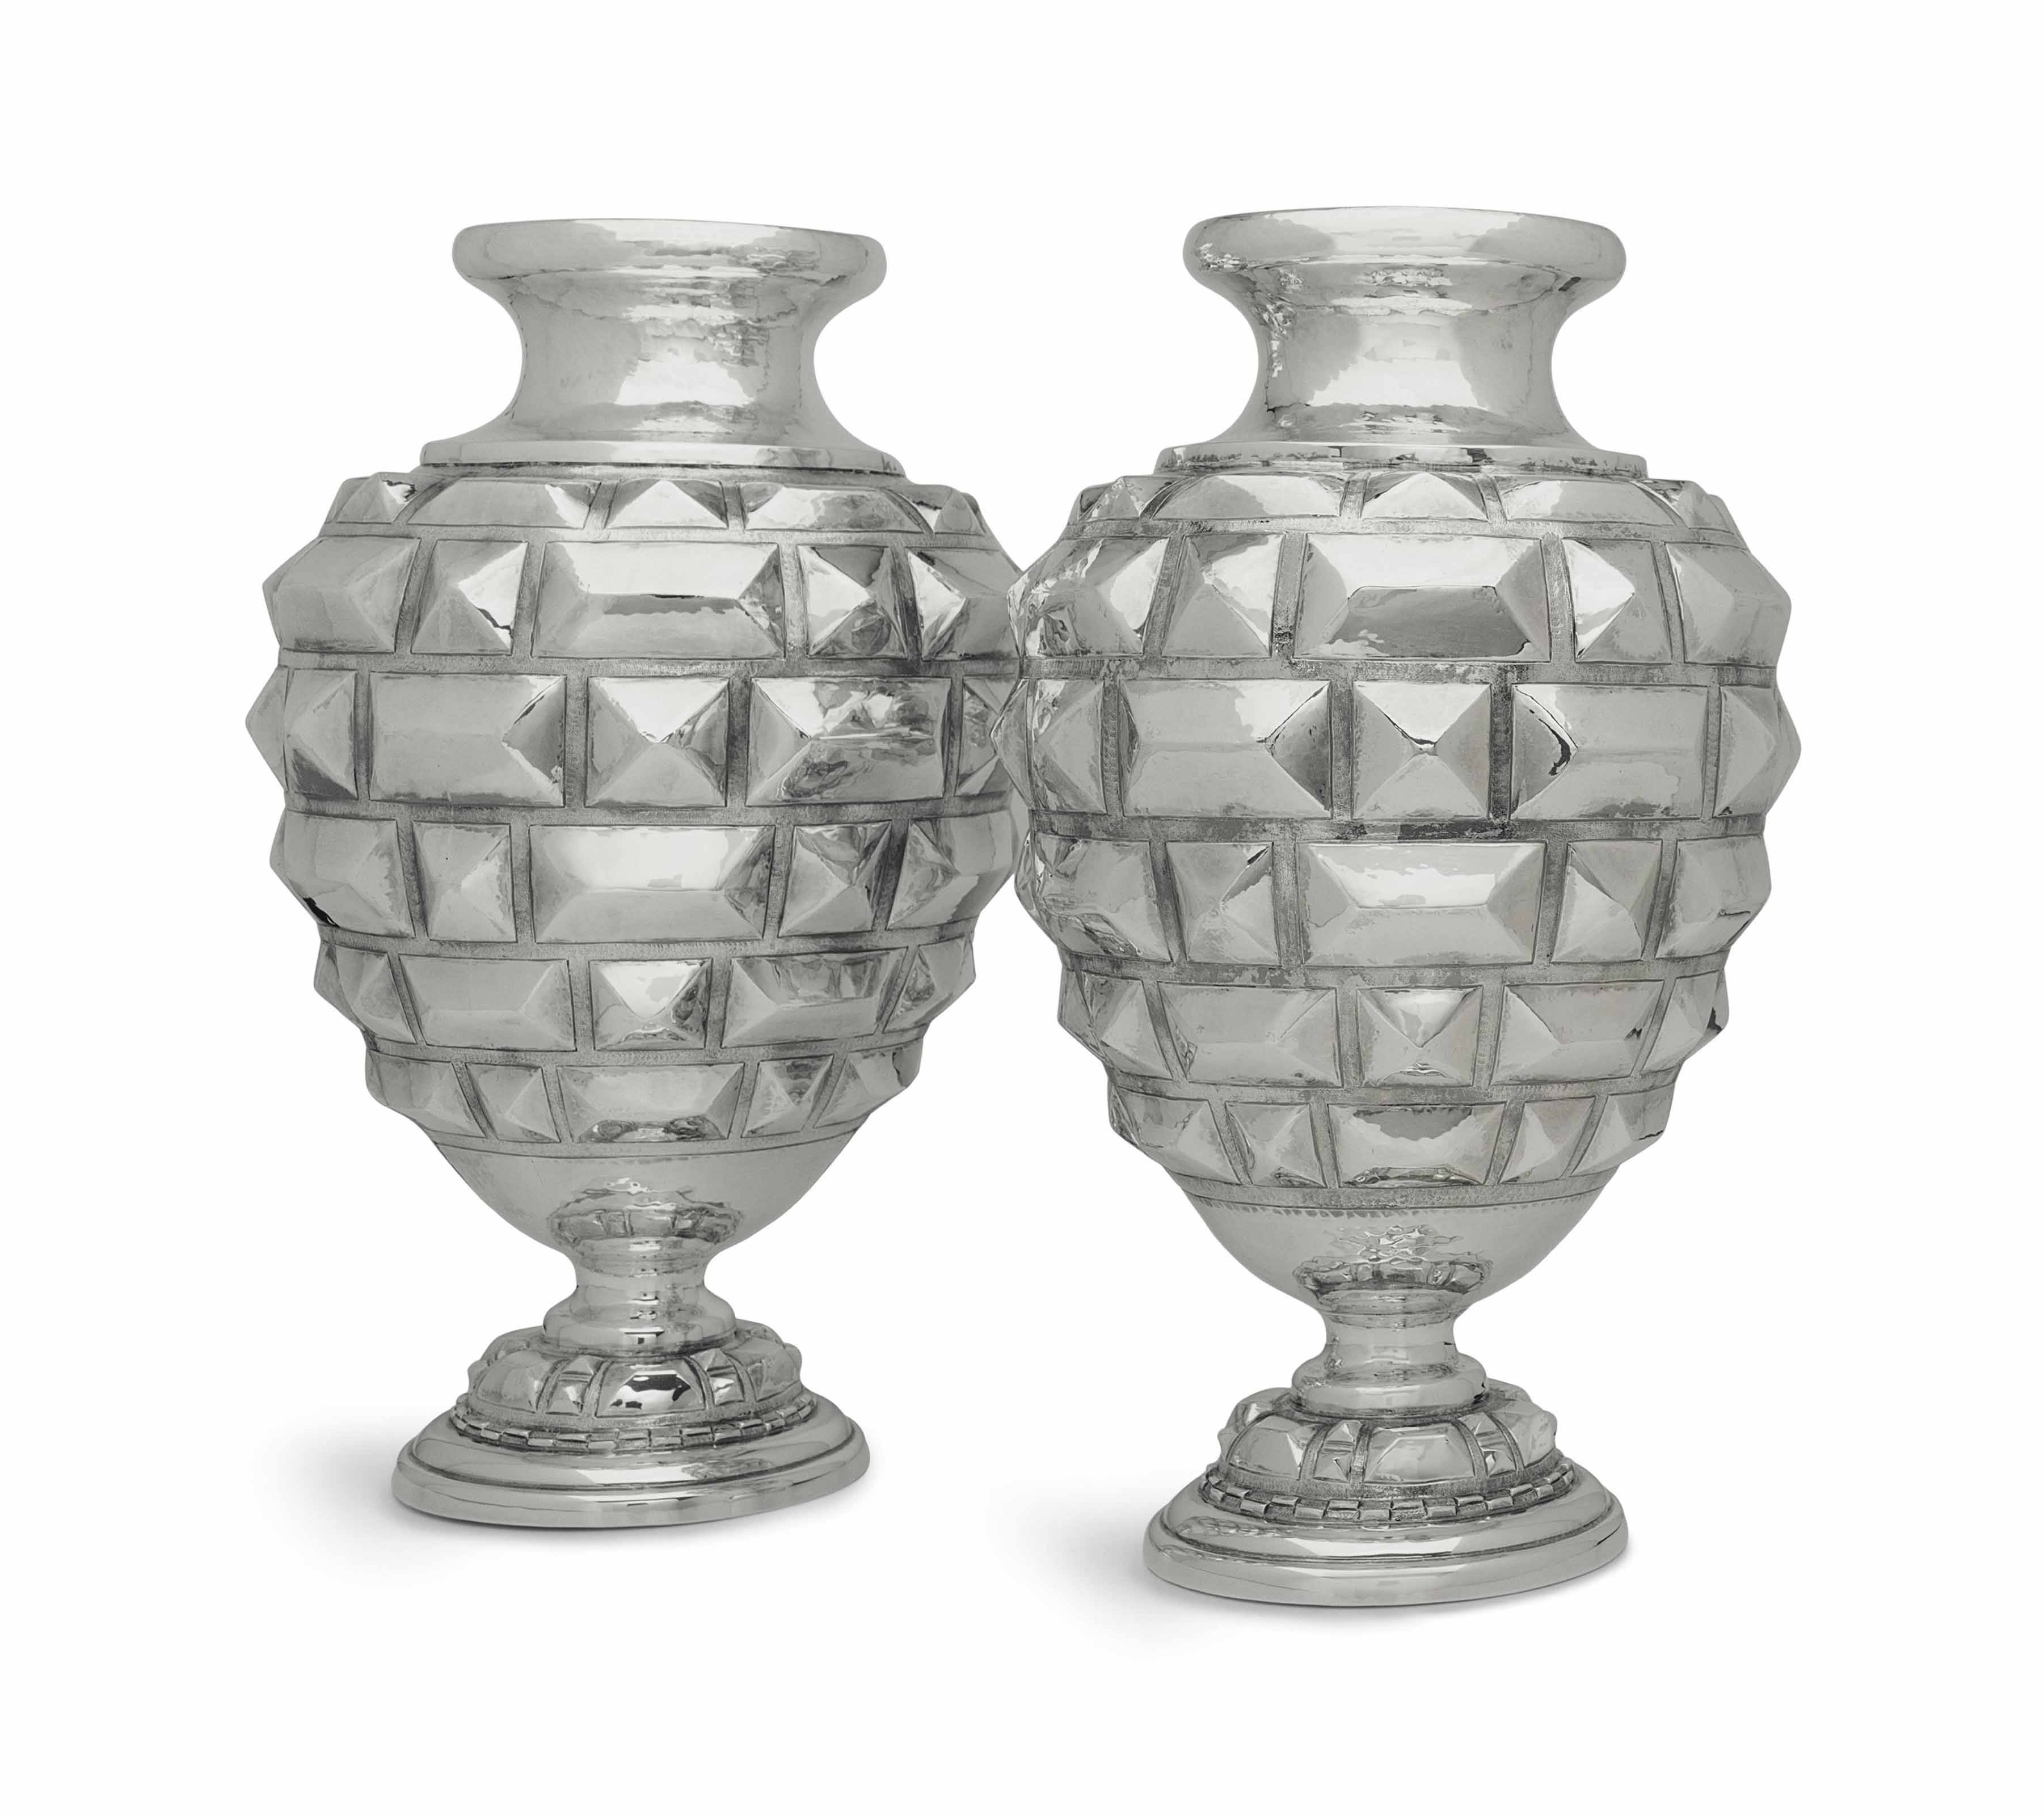 A PAIR OF LARGE ITALIAN SILVER VASES